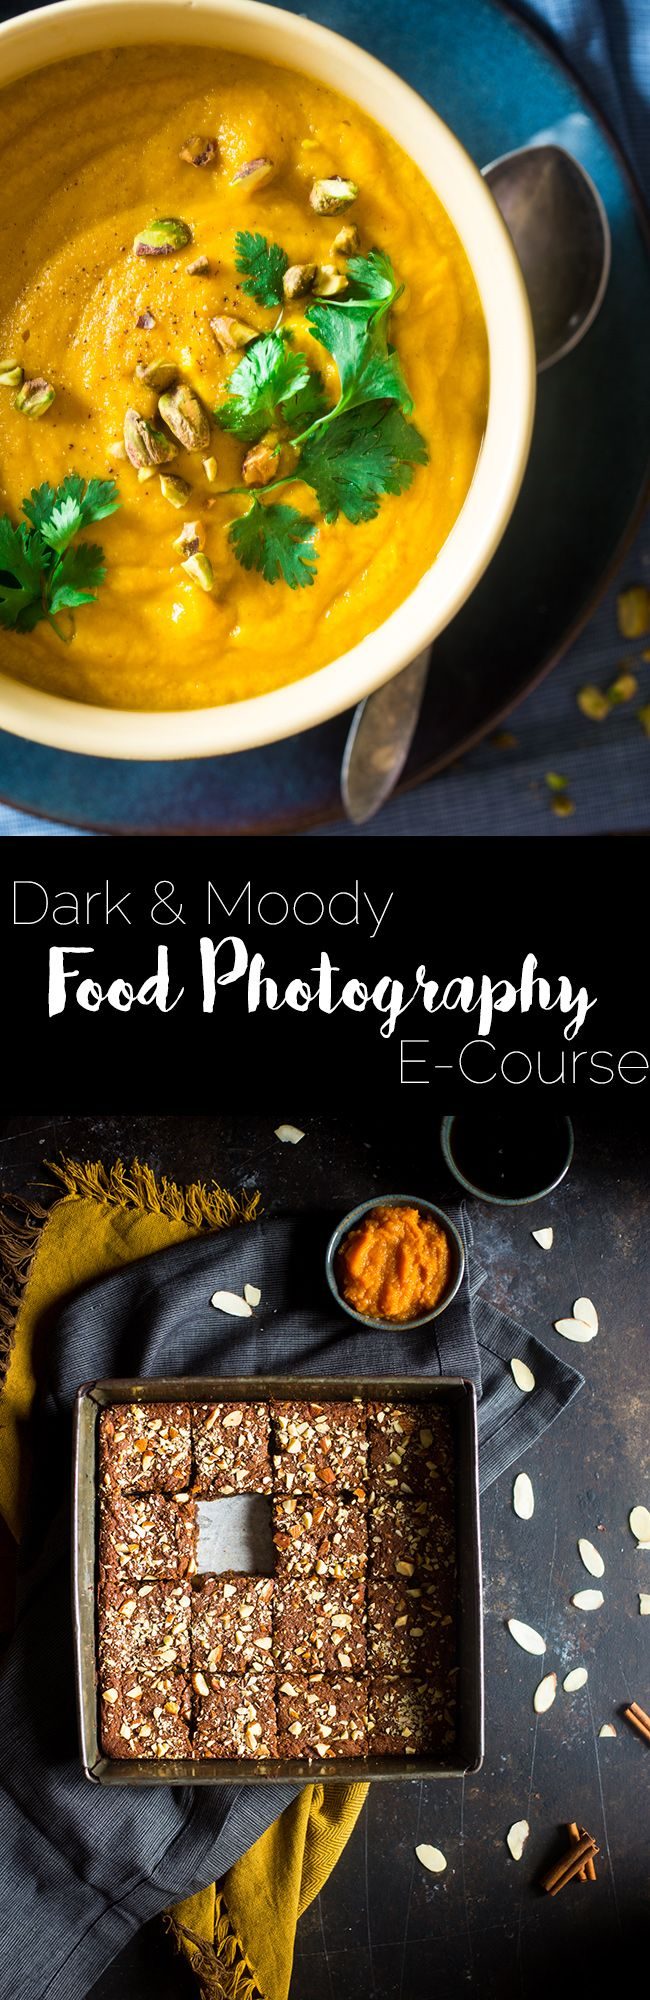 Dark and Moody Food Photography E-Course - Learn how to take gorgeous, moody